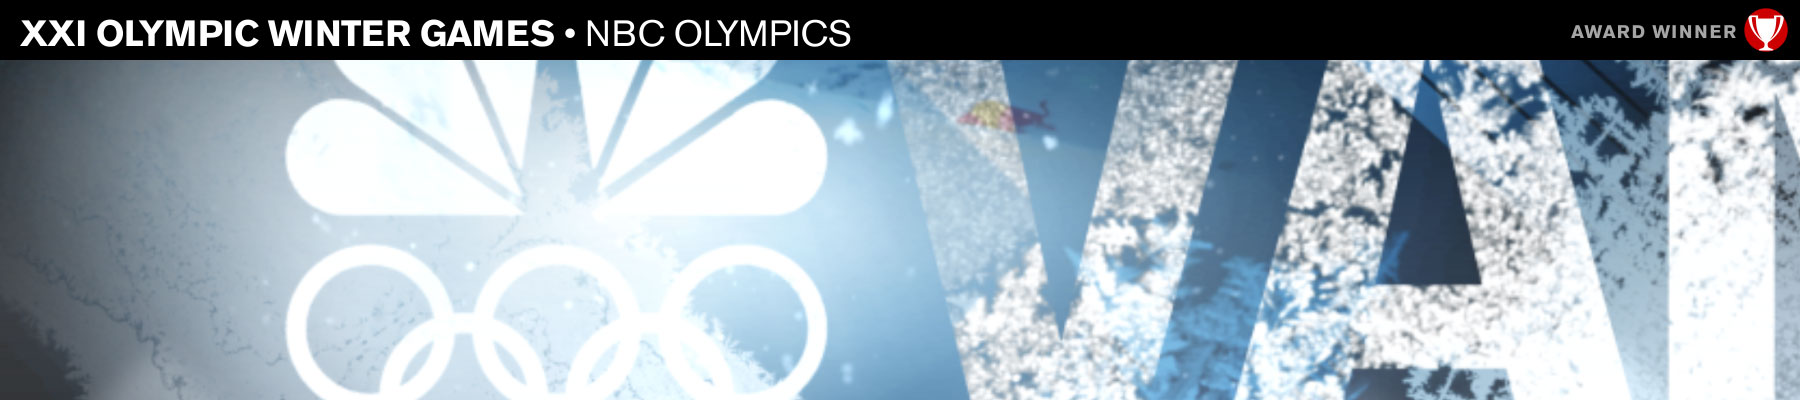 XXI Olympic Winter Games • NBC Olympics